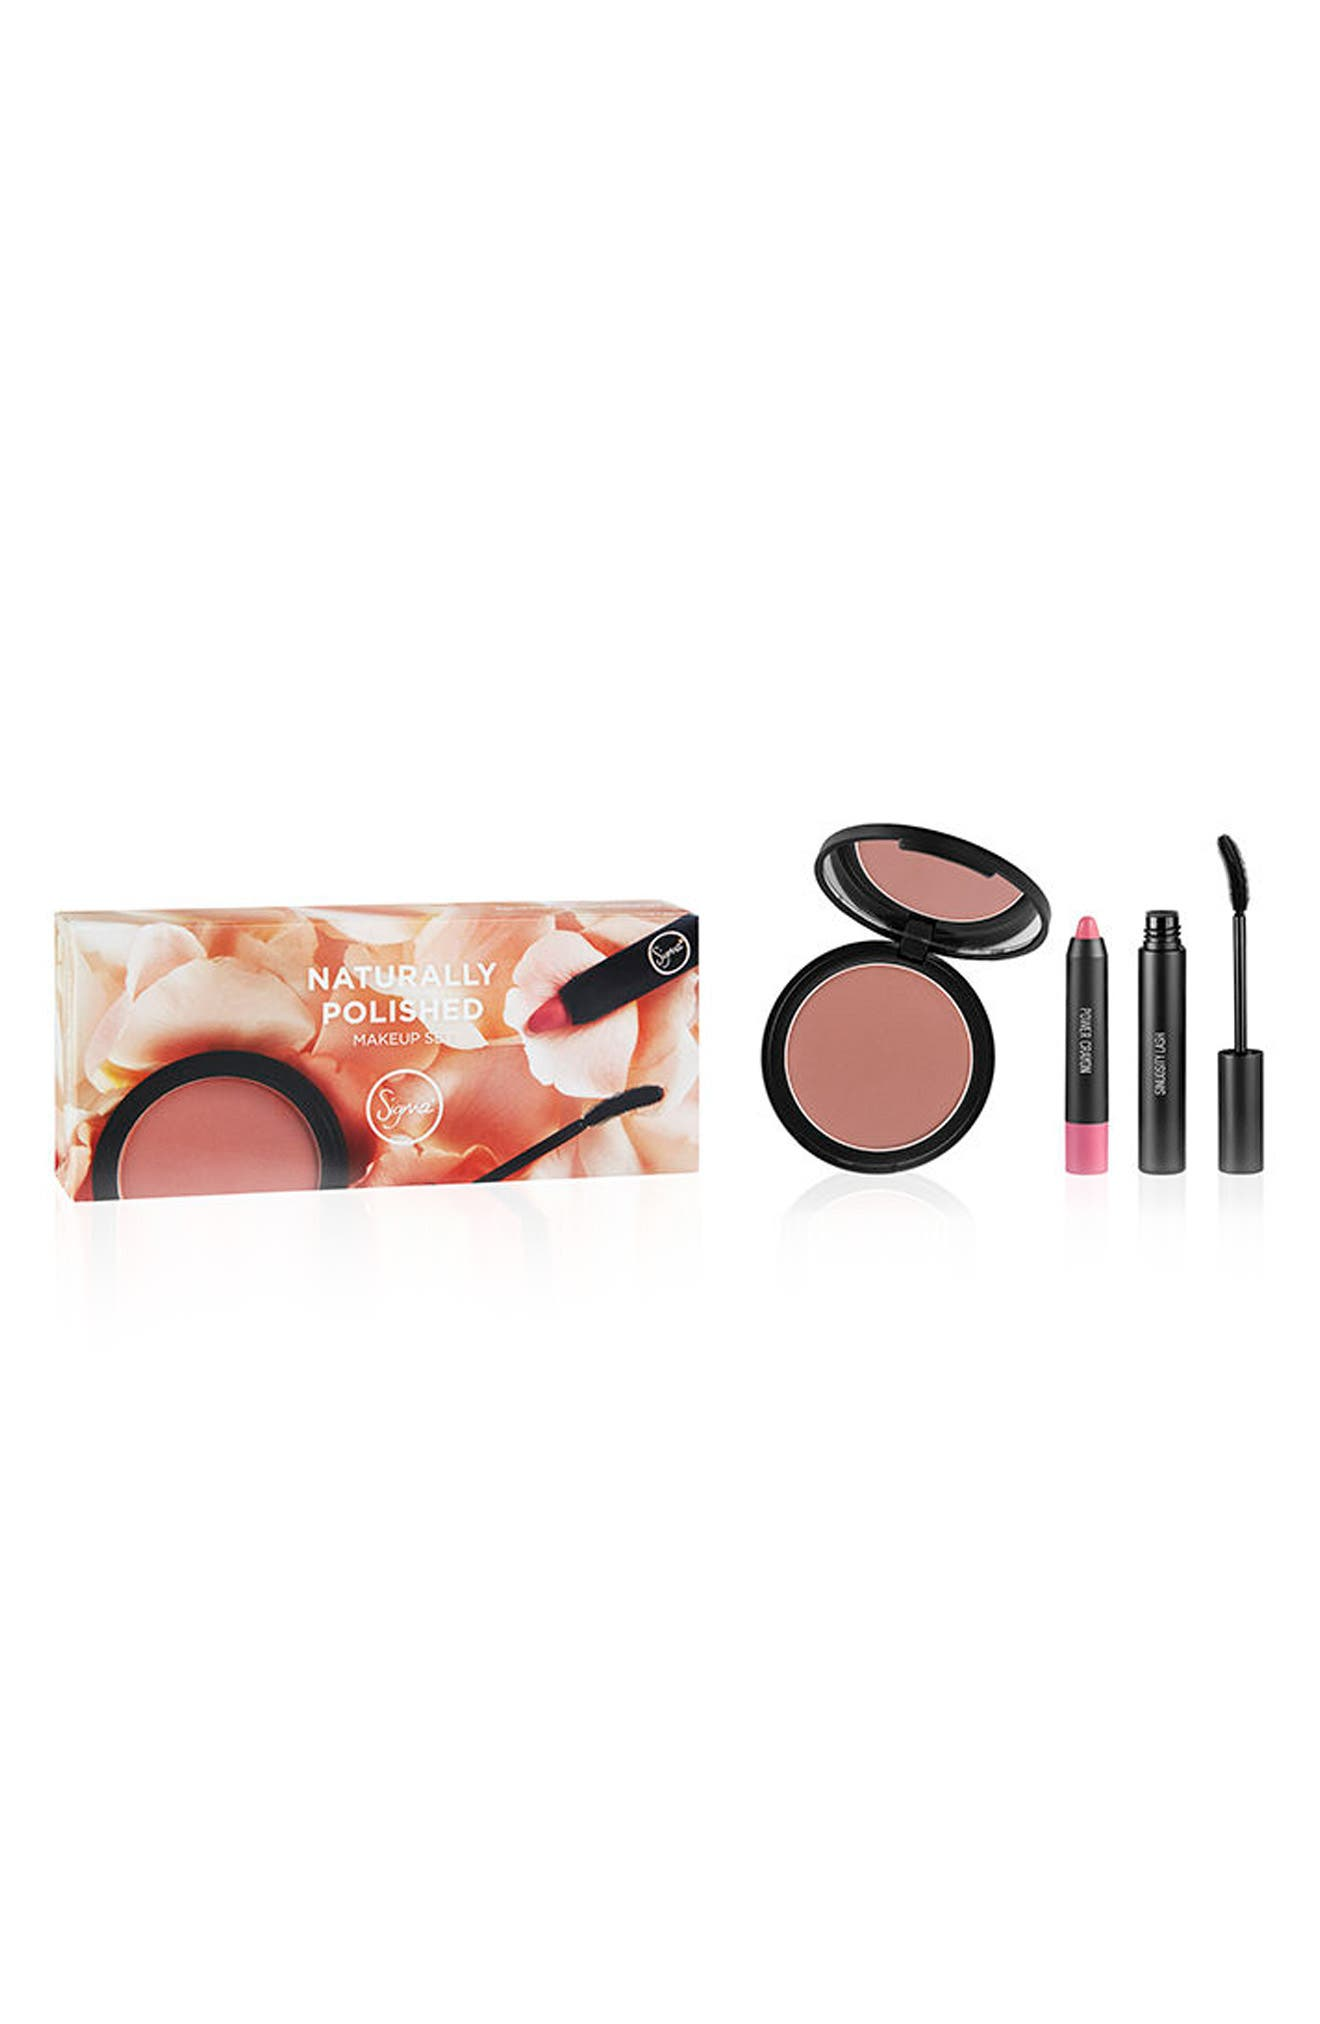 Naturally Polished Makeup Set,                             Alternate thumbnail 2, color,                             NO COLOR